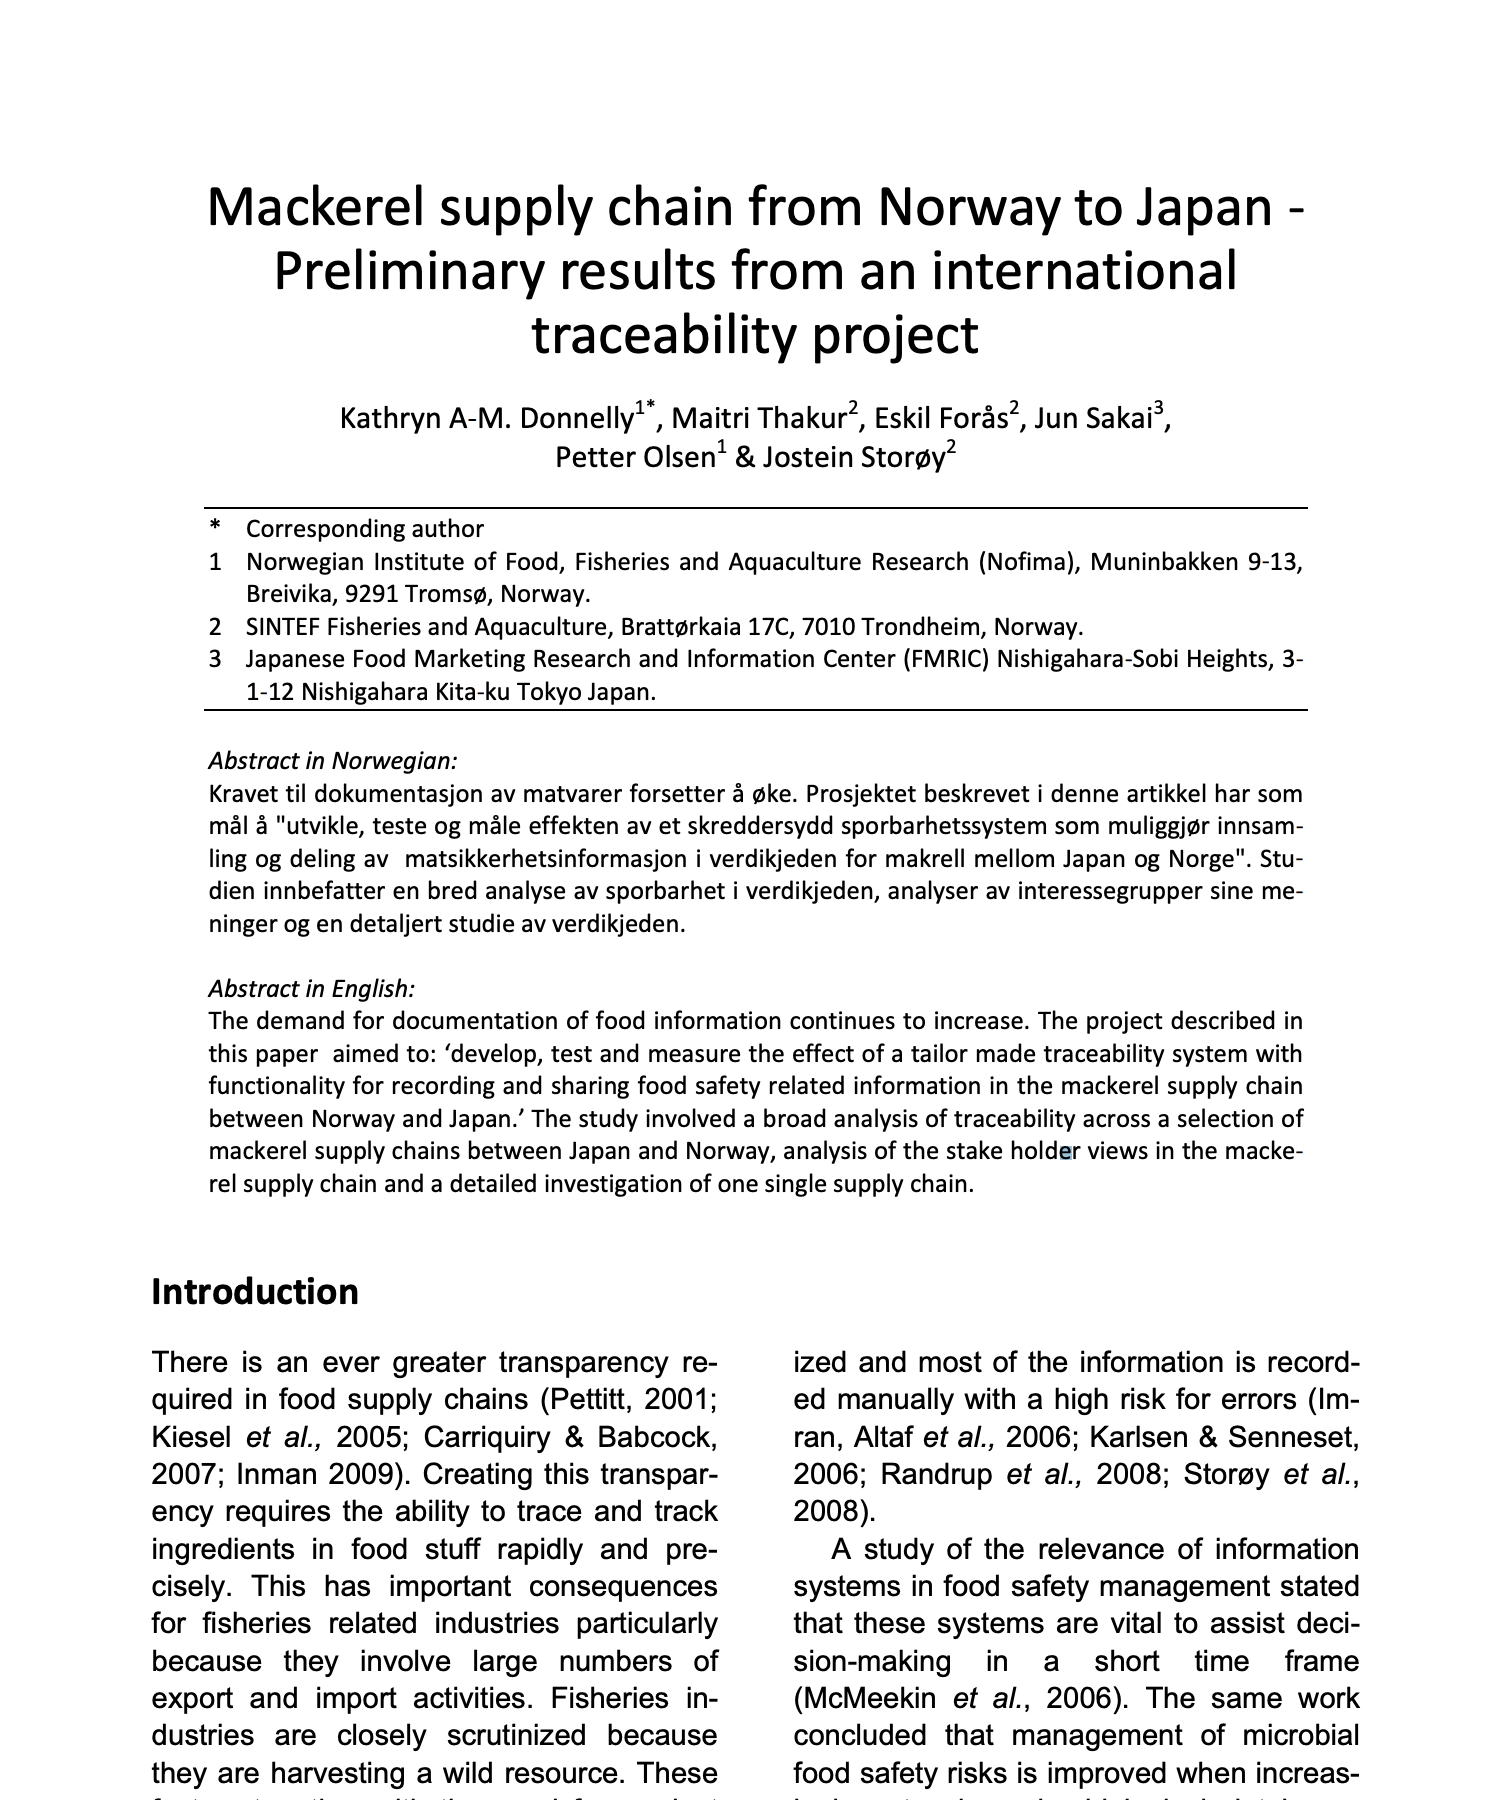 Mackerel supply chain from Norway to Japan – Preliminary results from an international traceability project